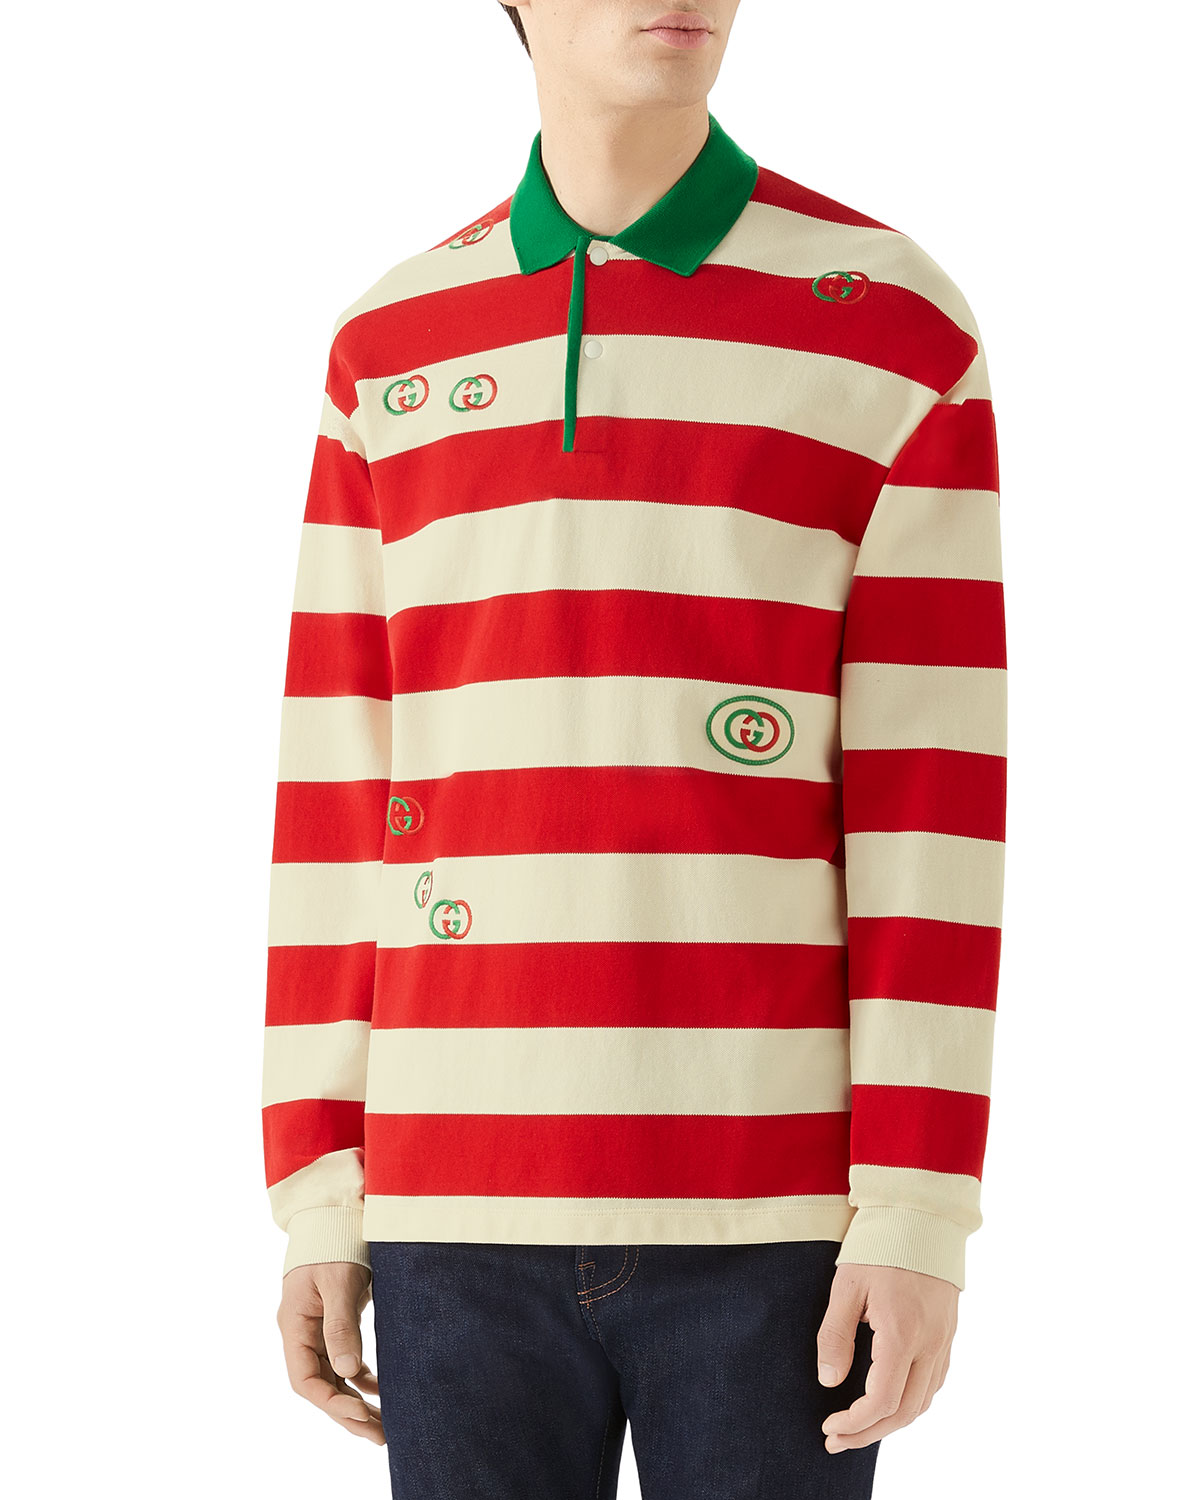 c5e3fd69c Gucci Men's Long-Sleeved Striped Logo Polo Shirt In Red Pattern ...